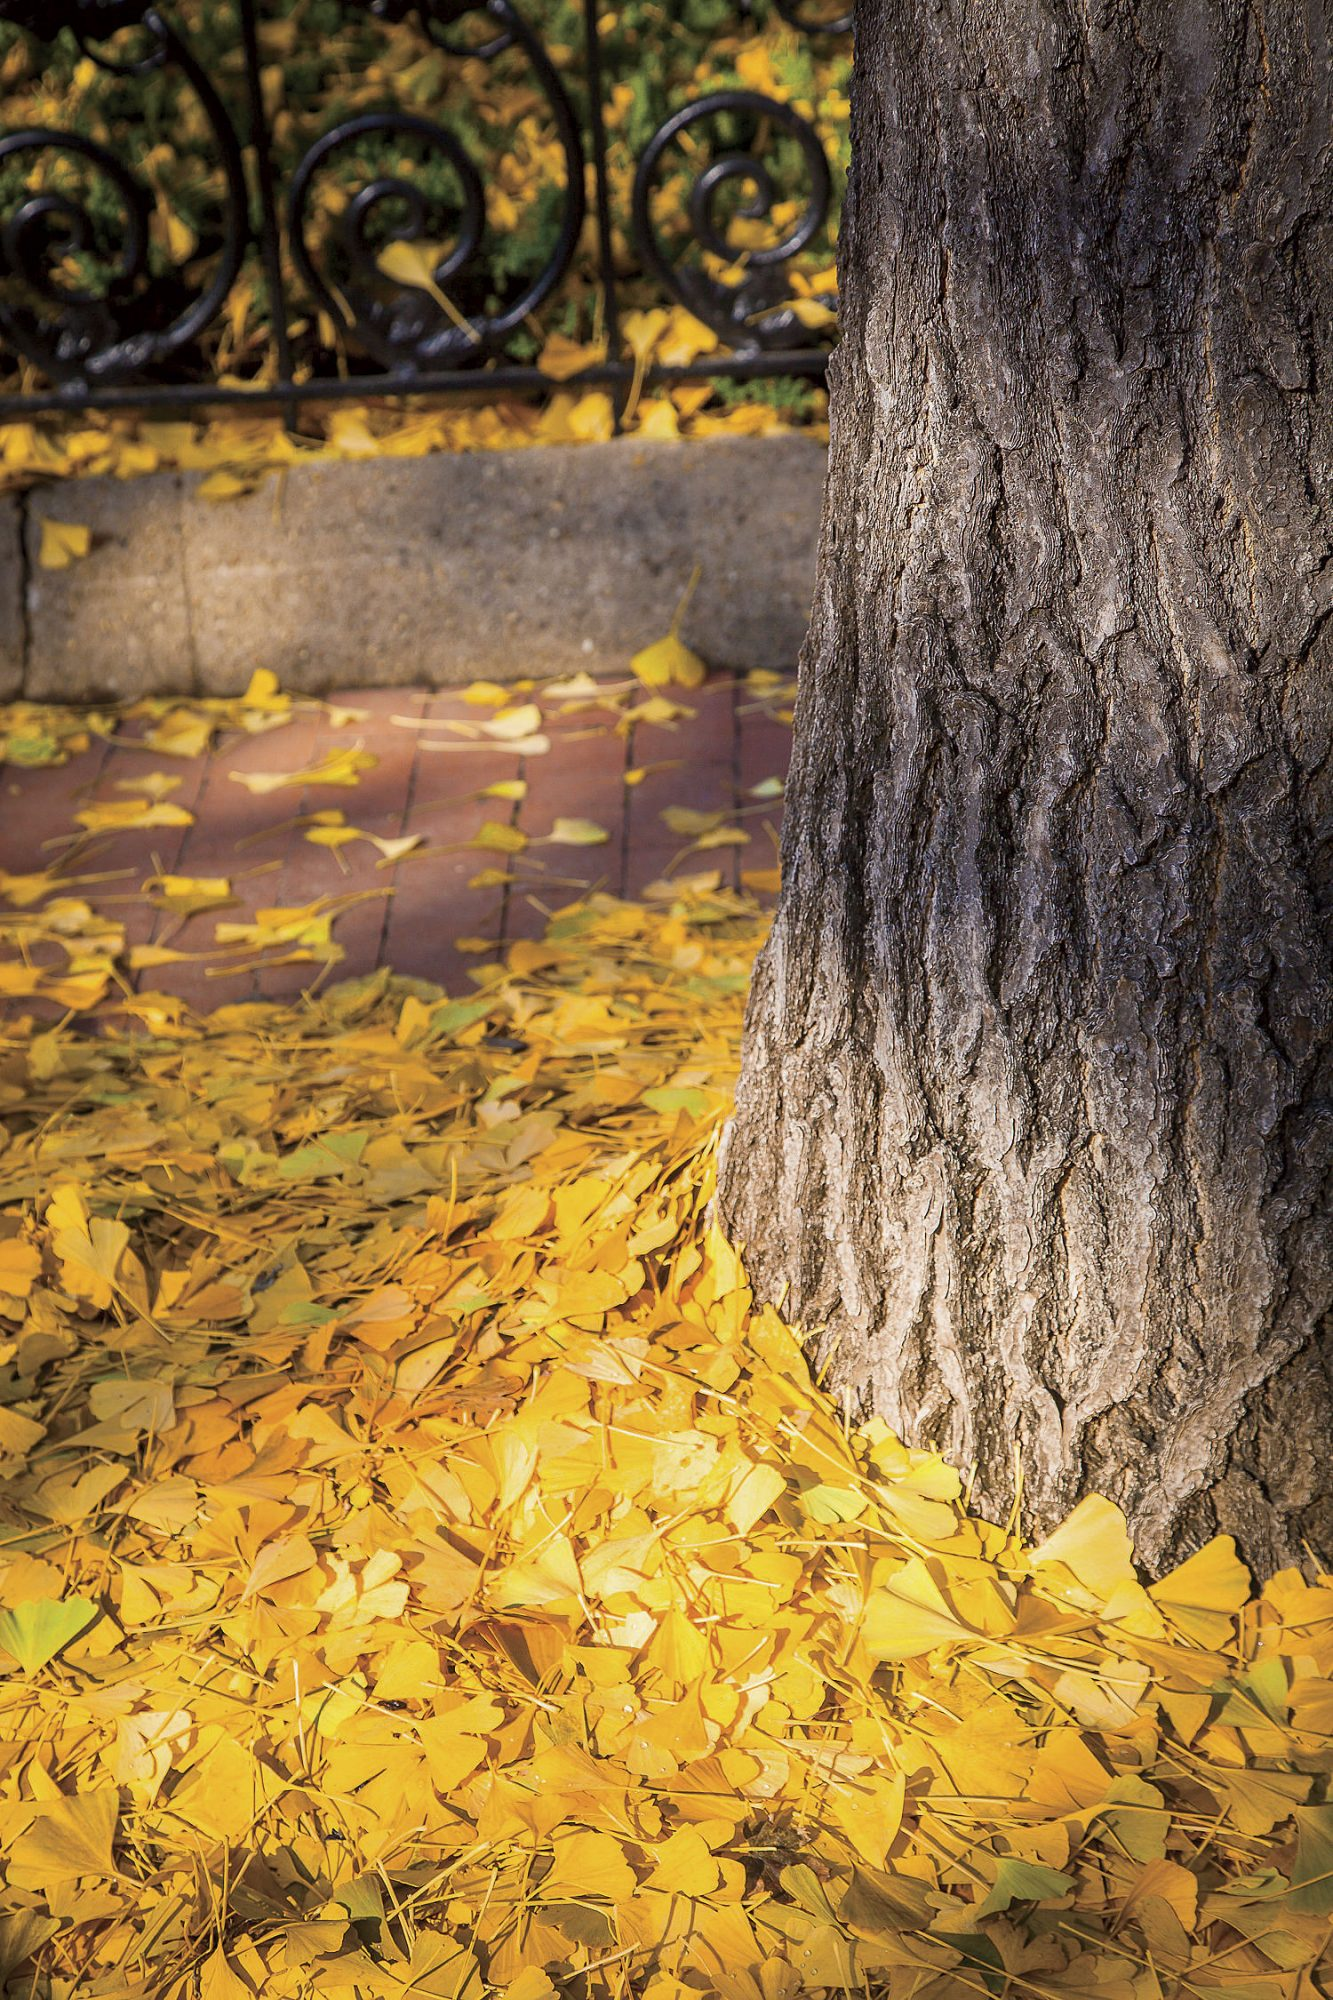 Ginkgo Leaves Against Tree Trunk